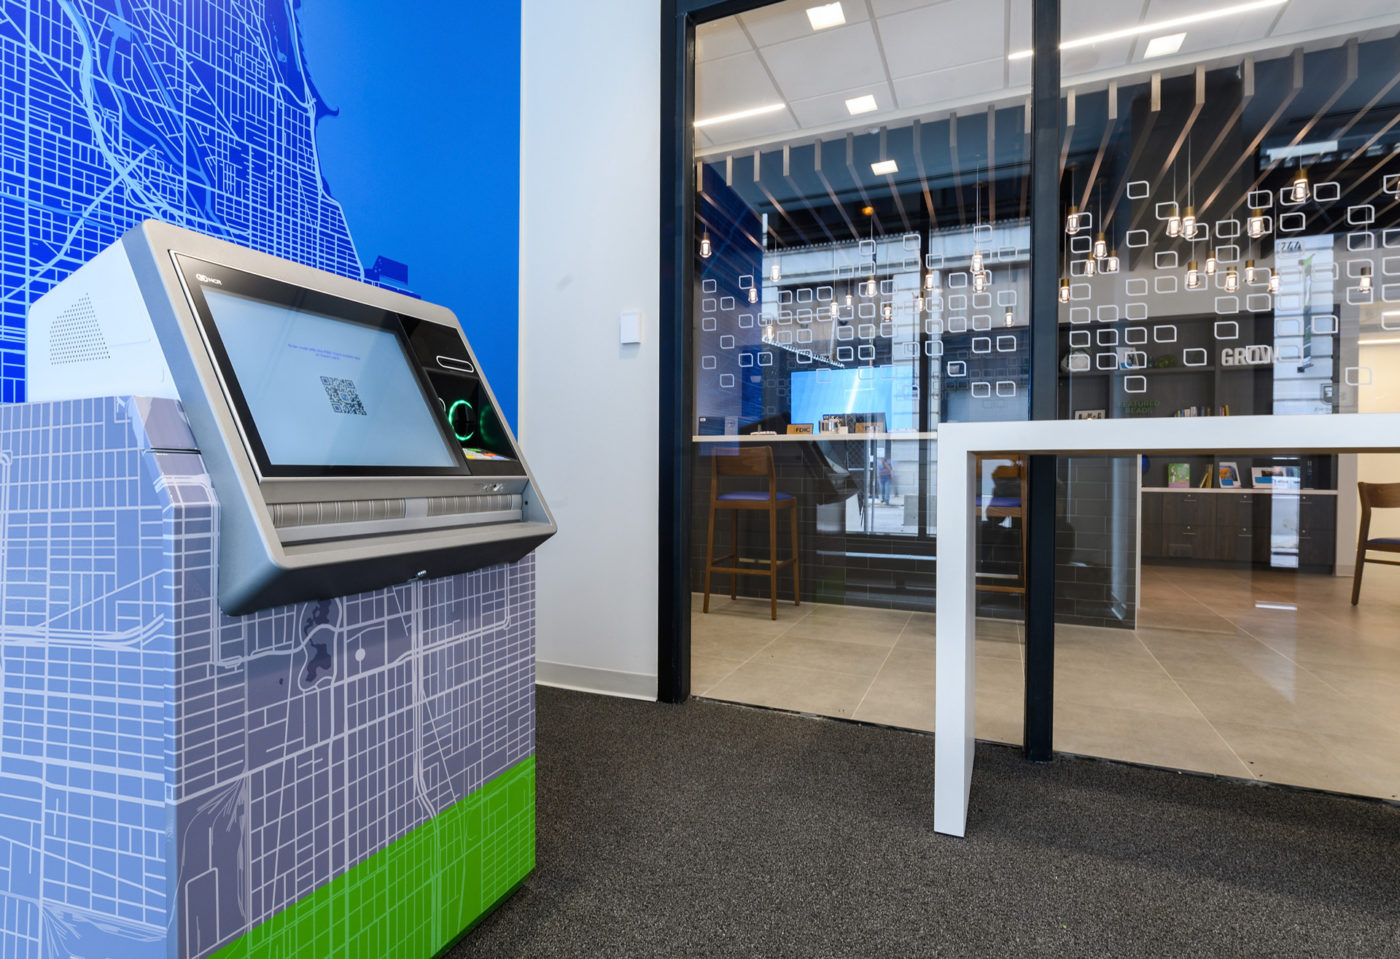 Fifth Third Bank ATM lobby with ATM and map wall graphics designed by Formula Design